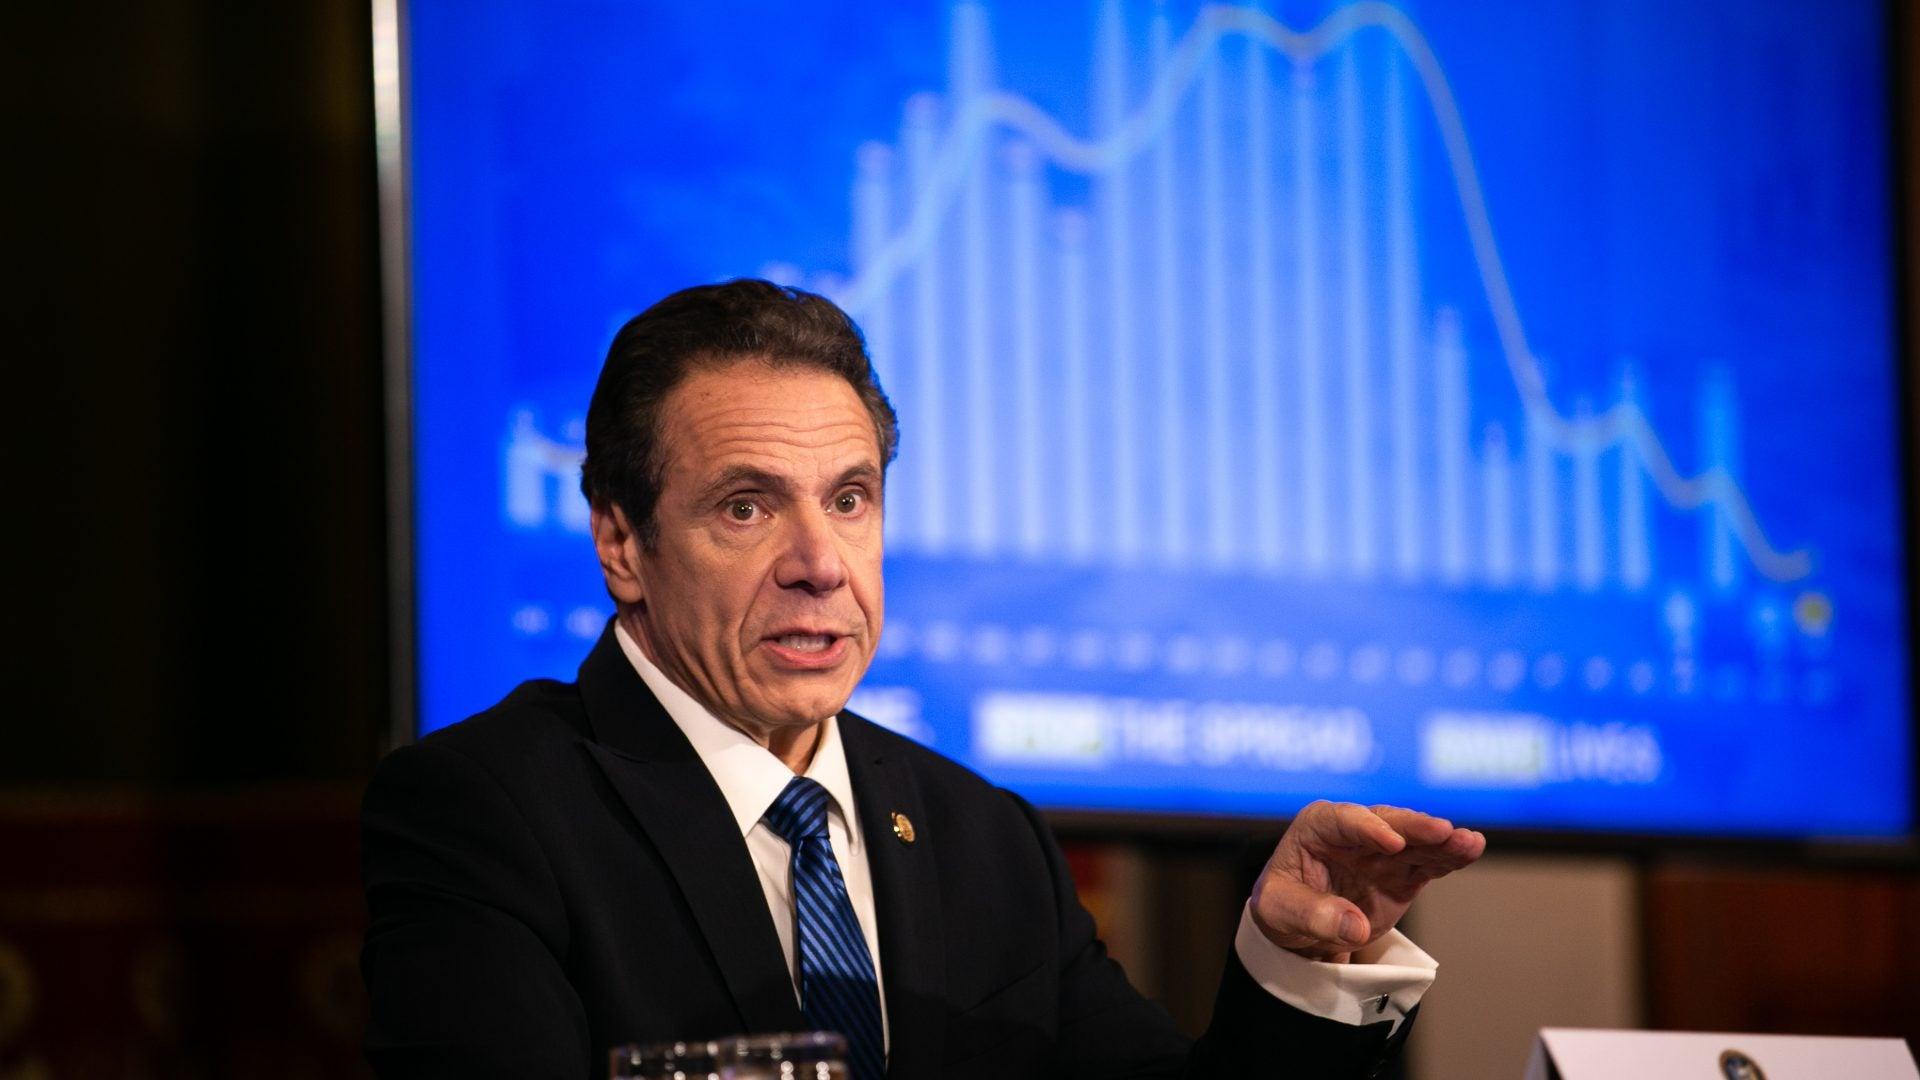 Cuomo Calls McConnell Everything But A Child Of God During Press Briefing